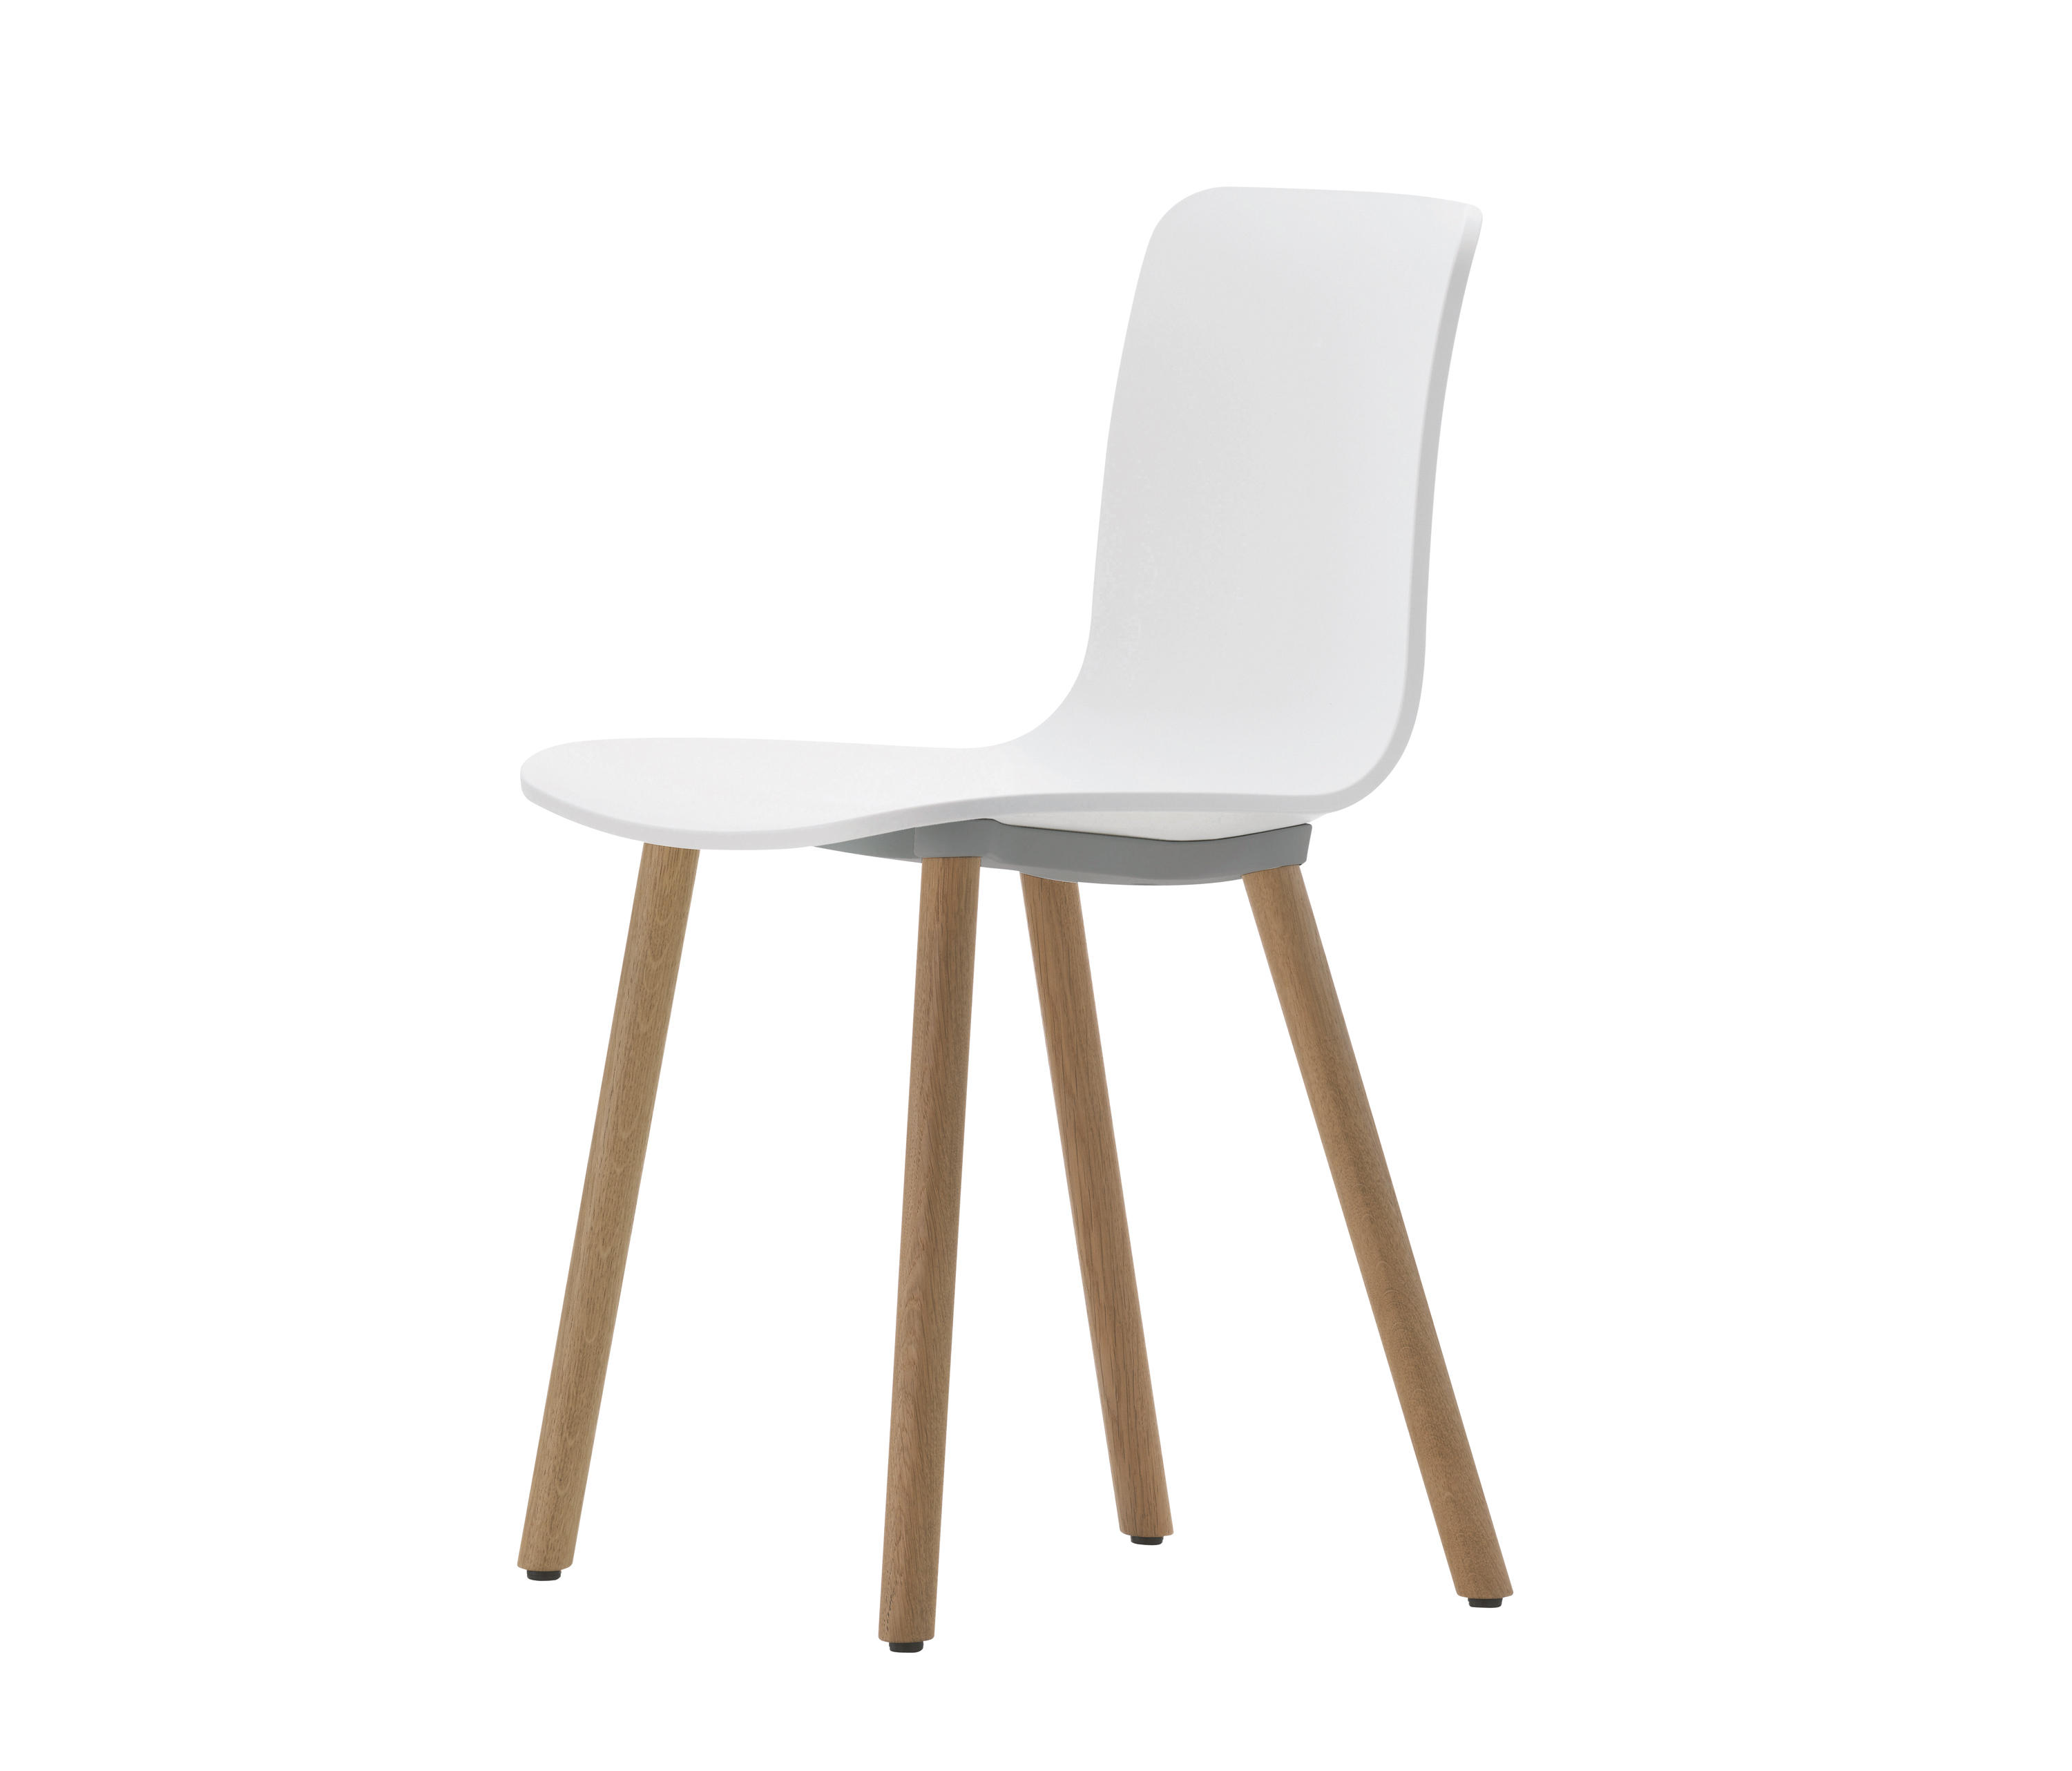 HAL WOOD Multipurpose chairs from Vitra